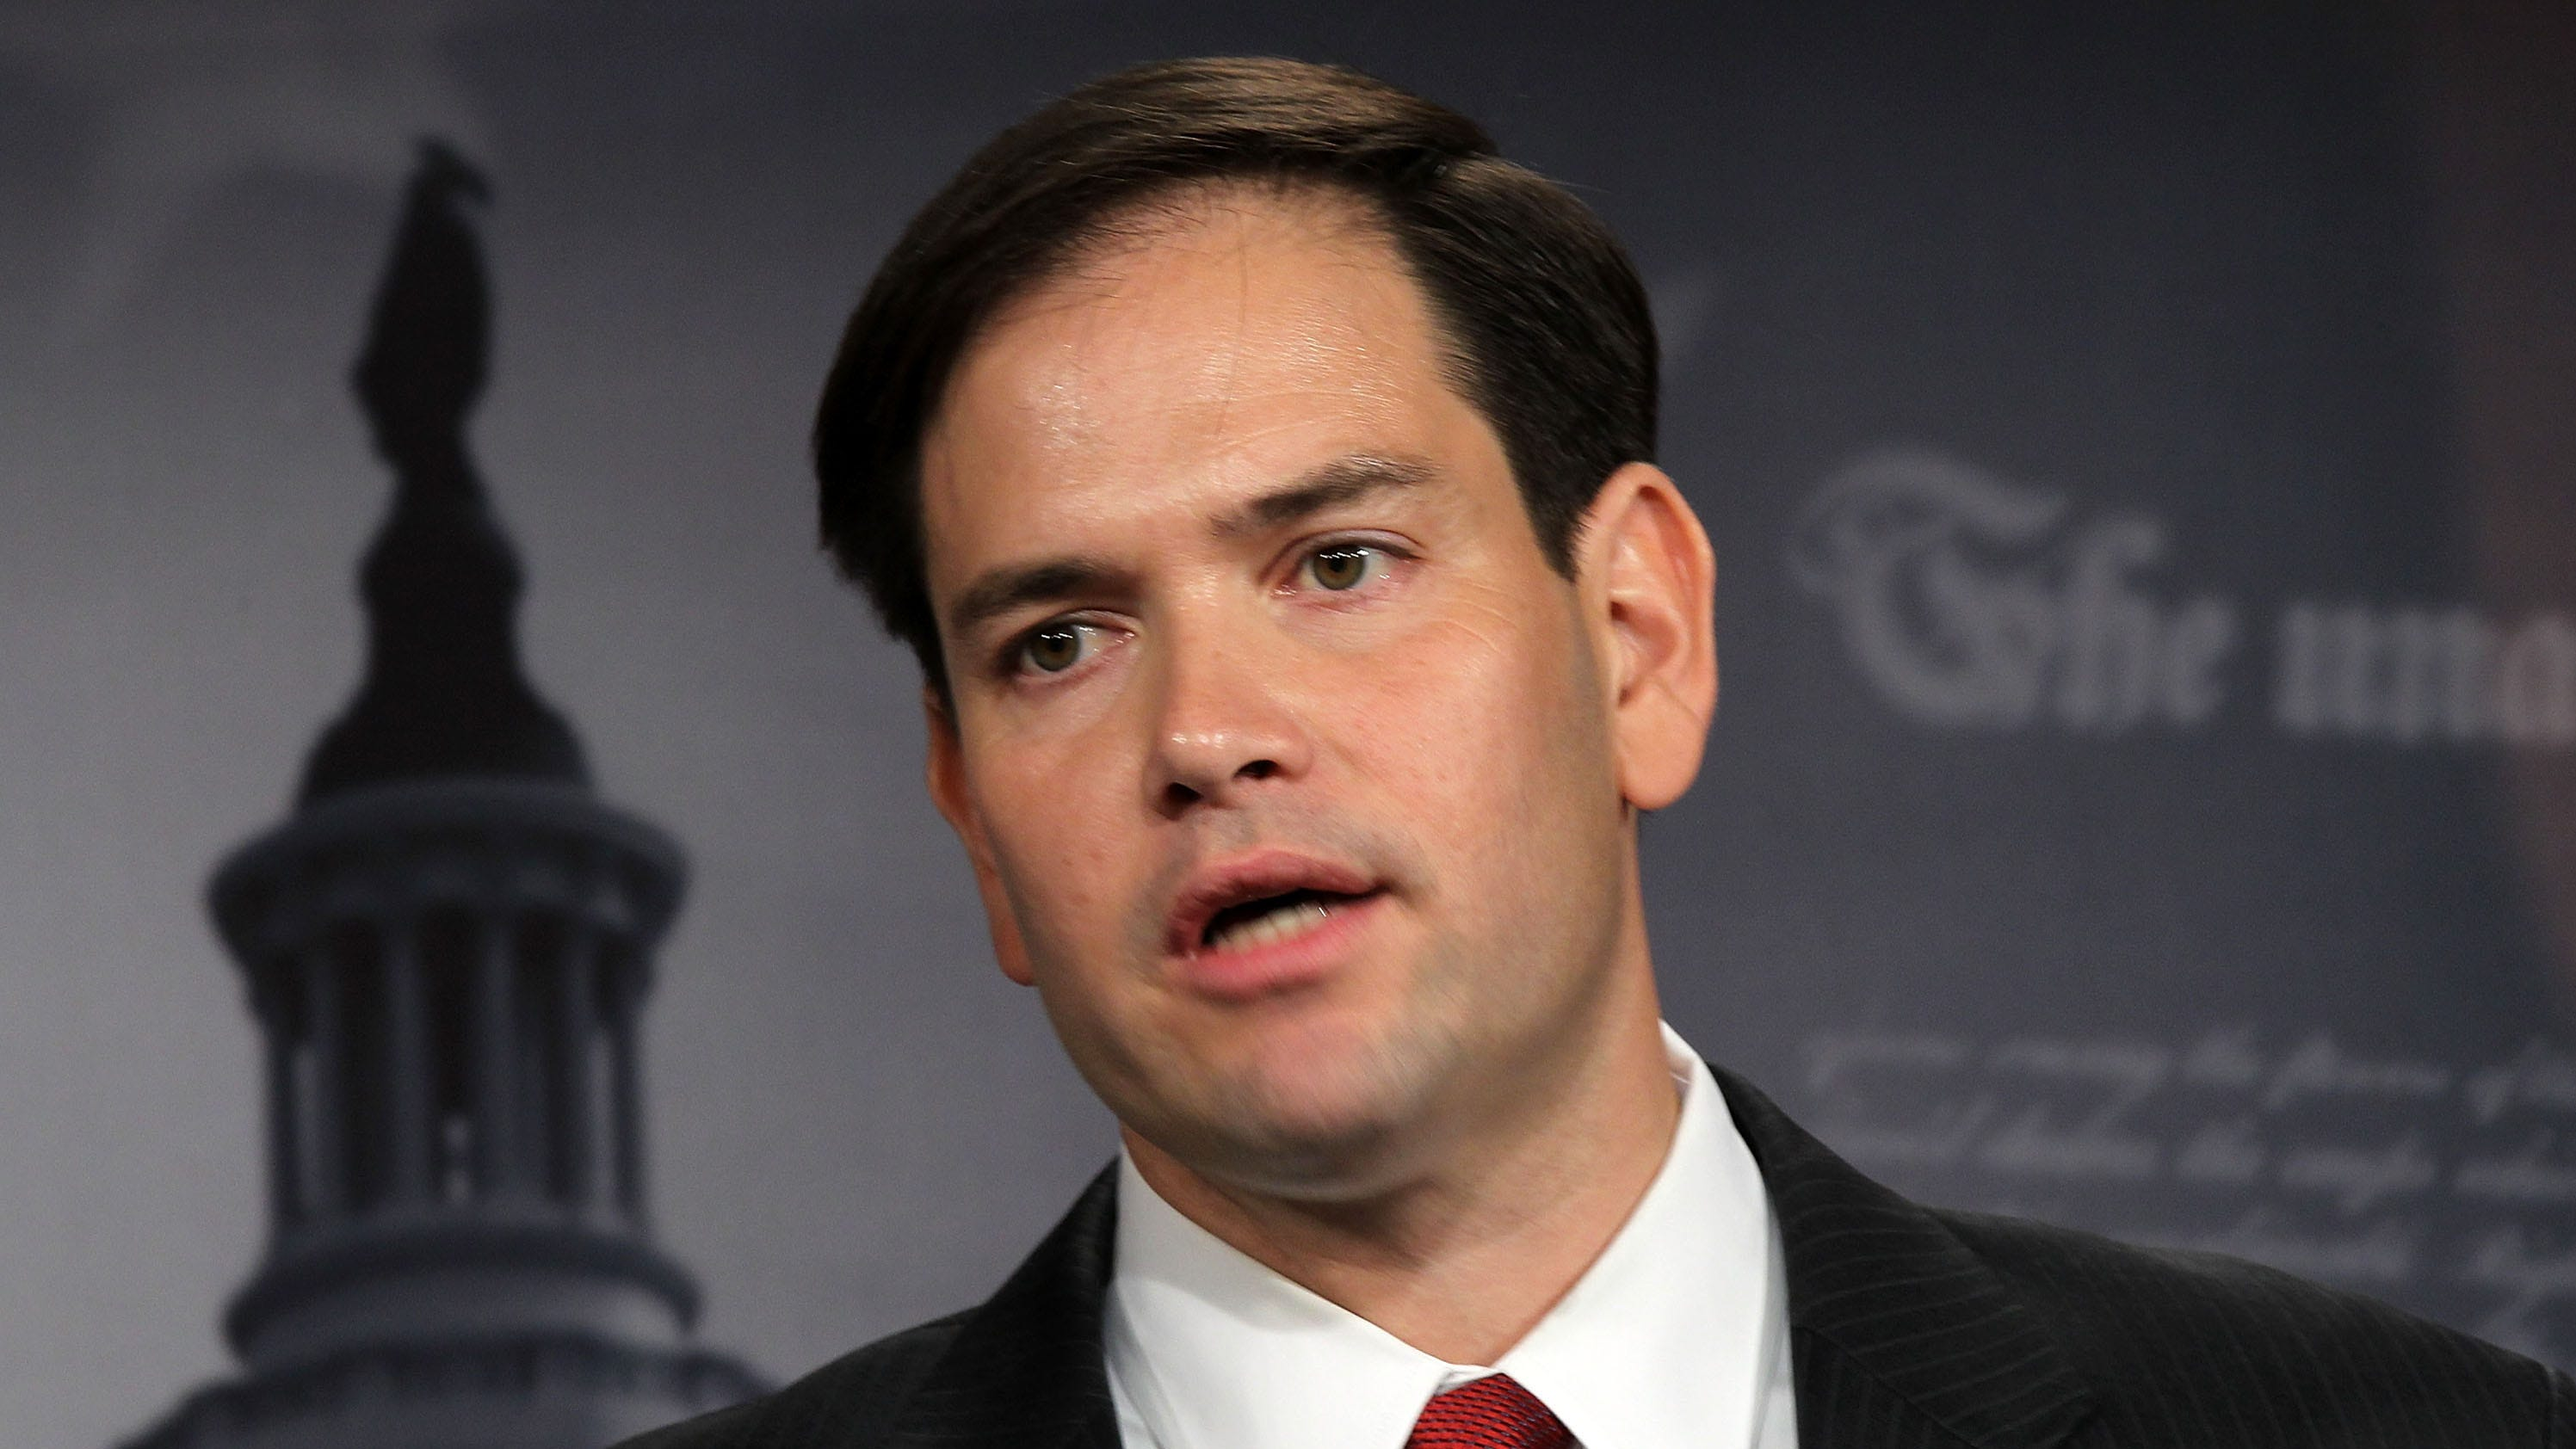 Rubio net worth